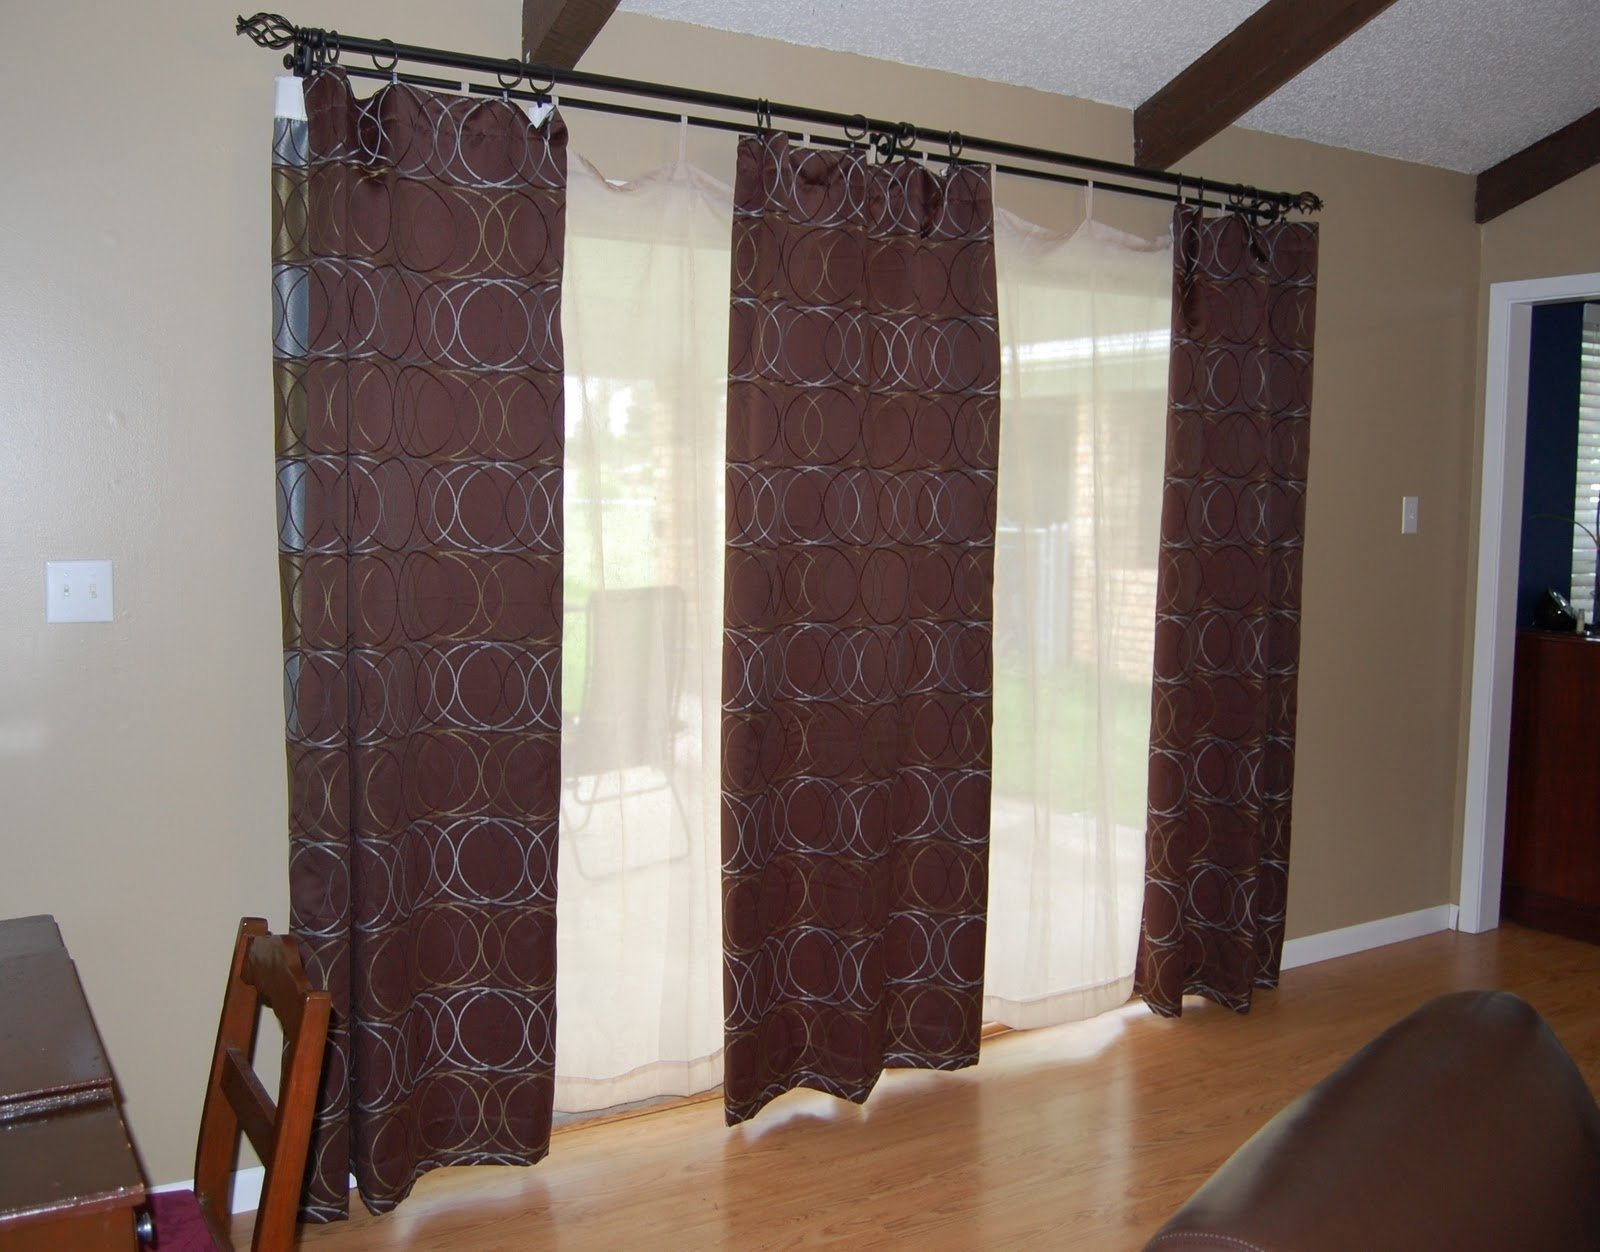 10 Stylish Curtain Ideas For French Doors sliding patio door curtains ideas charter home ideas